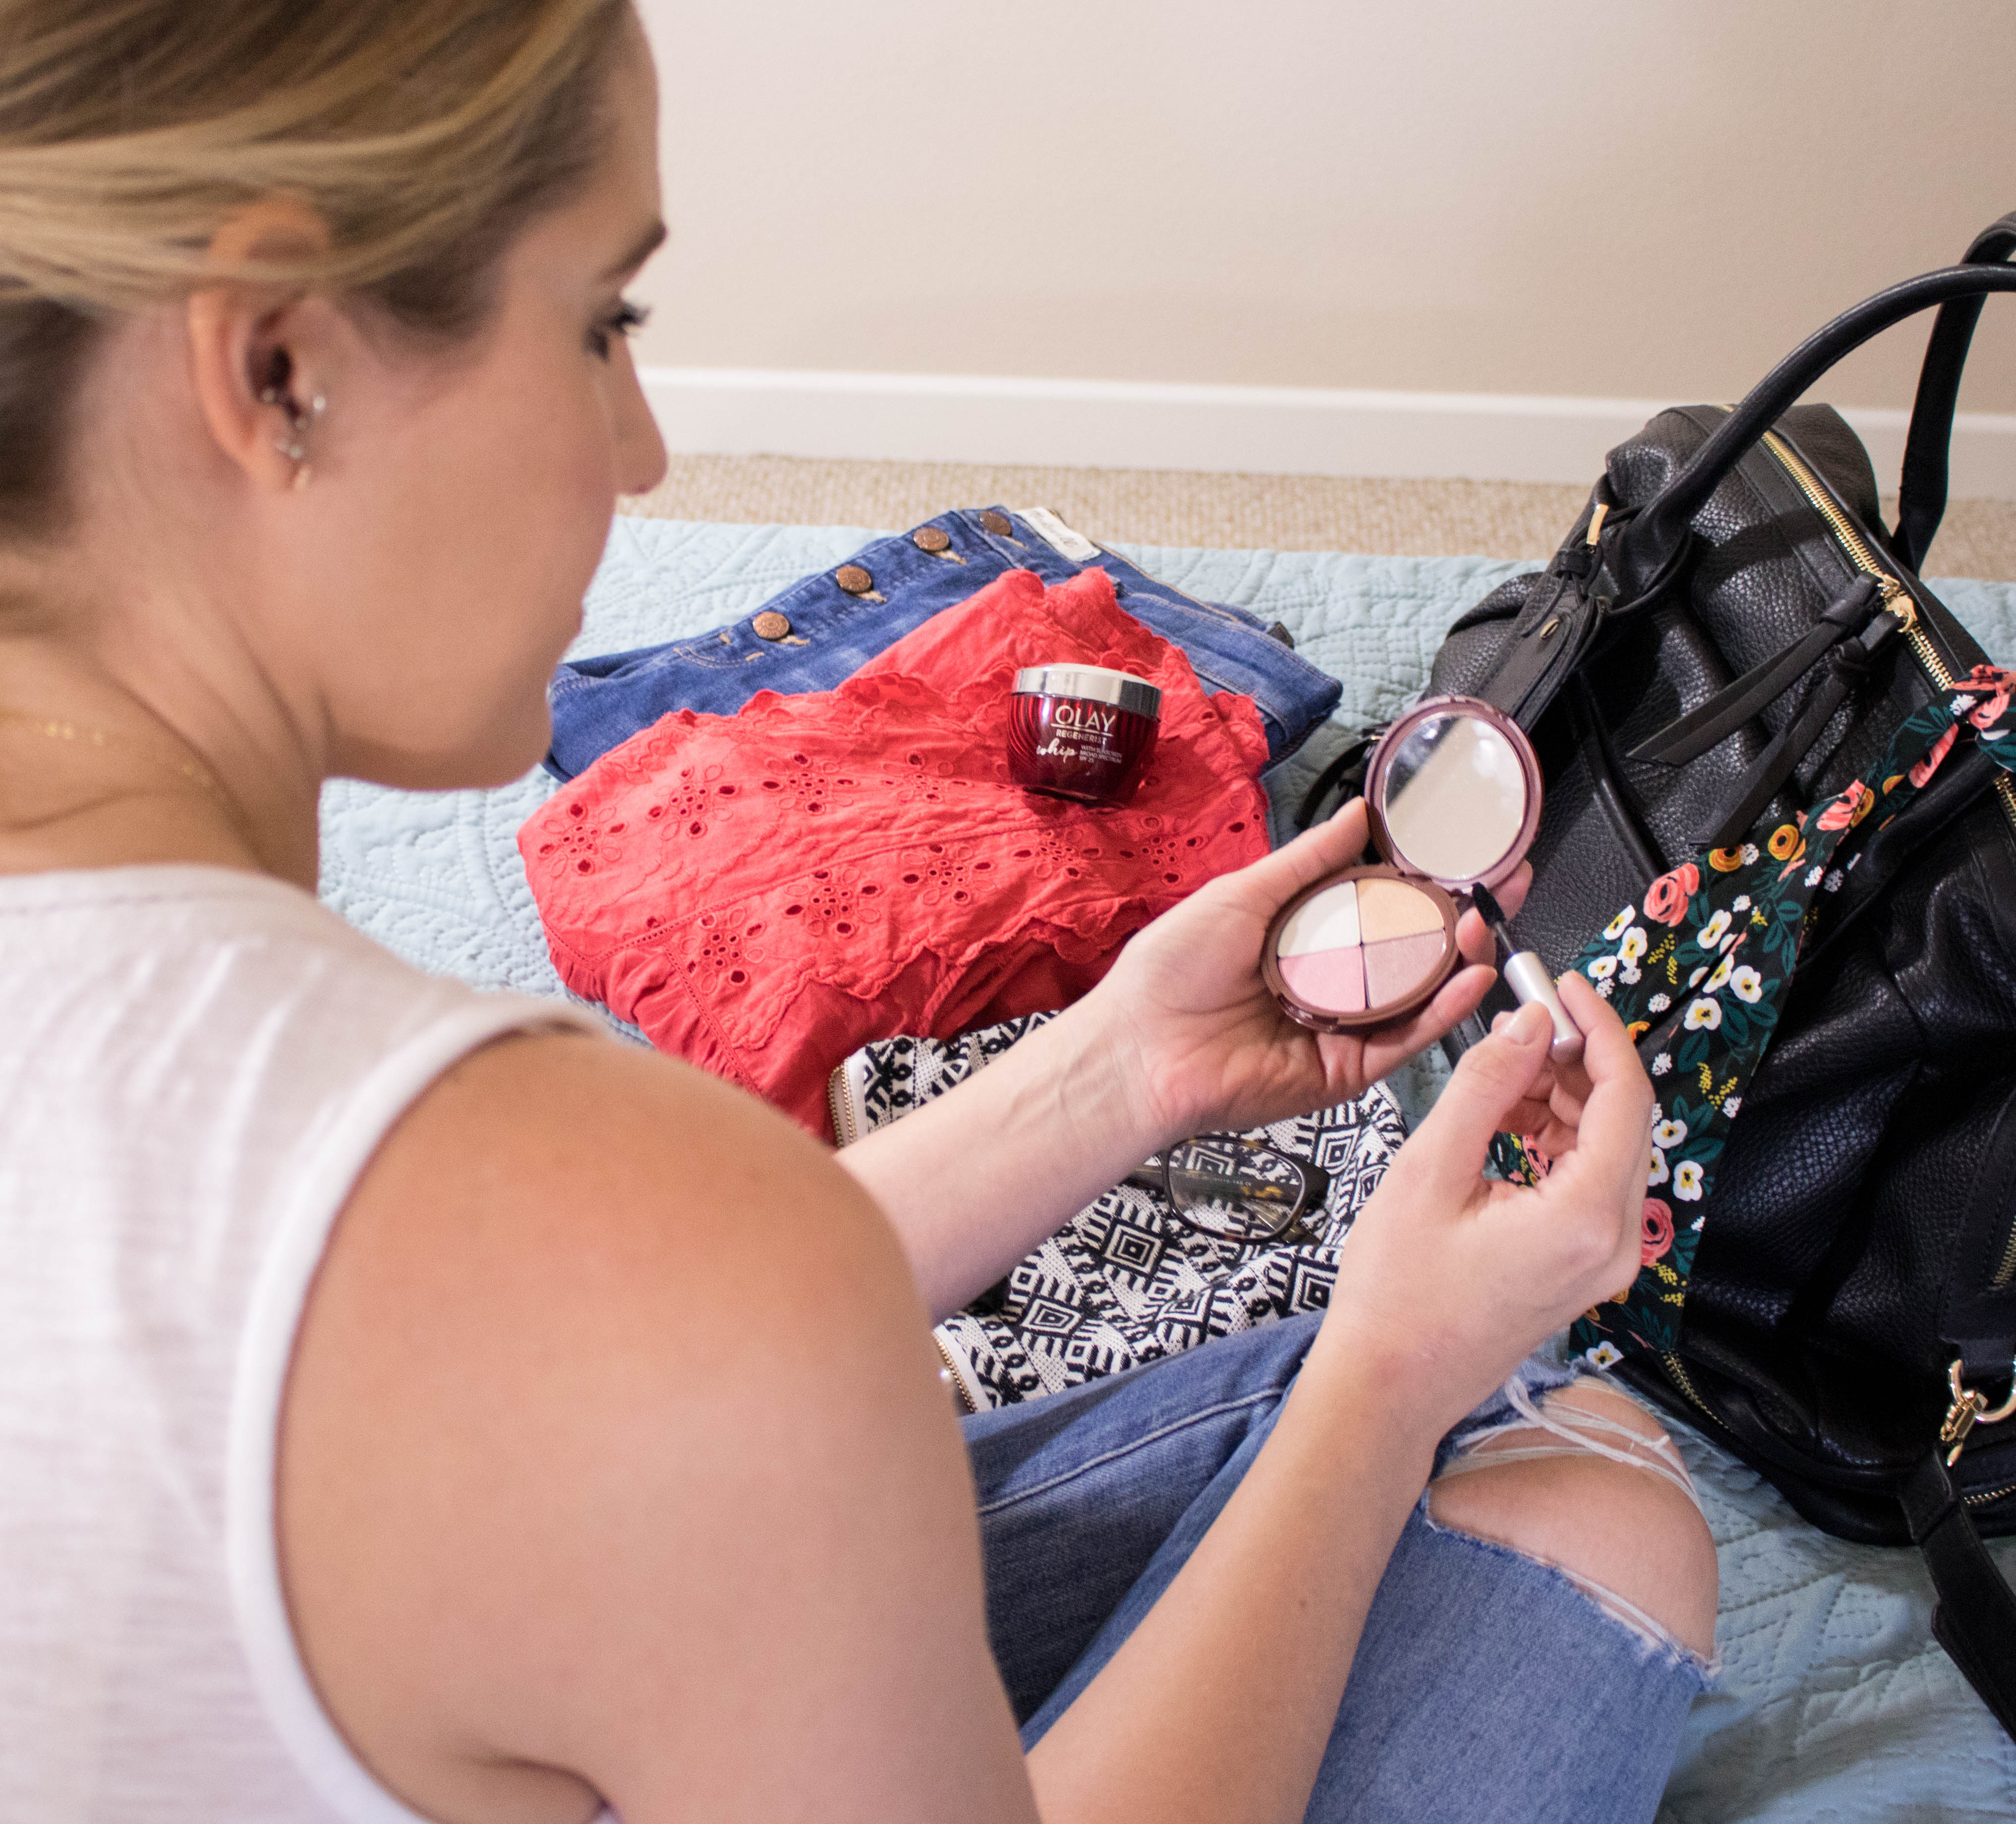 packing beauty bag for summer travel #beauty #travel #skincare #makeup